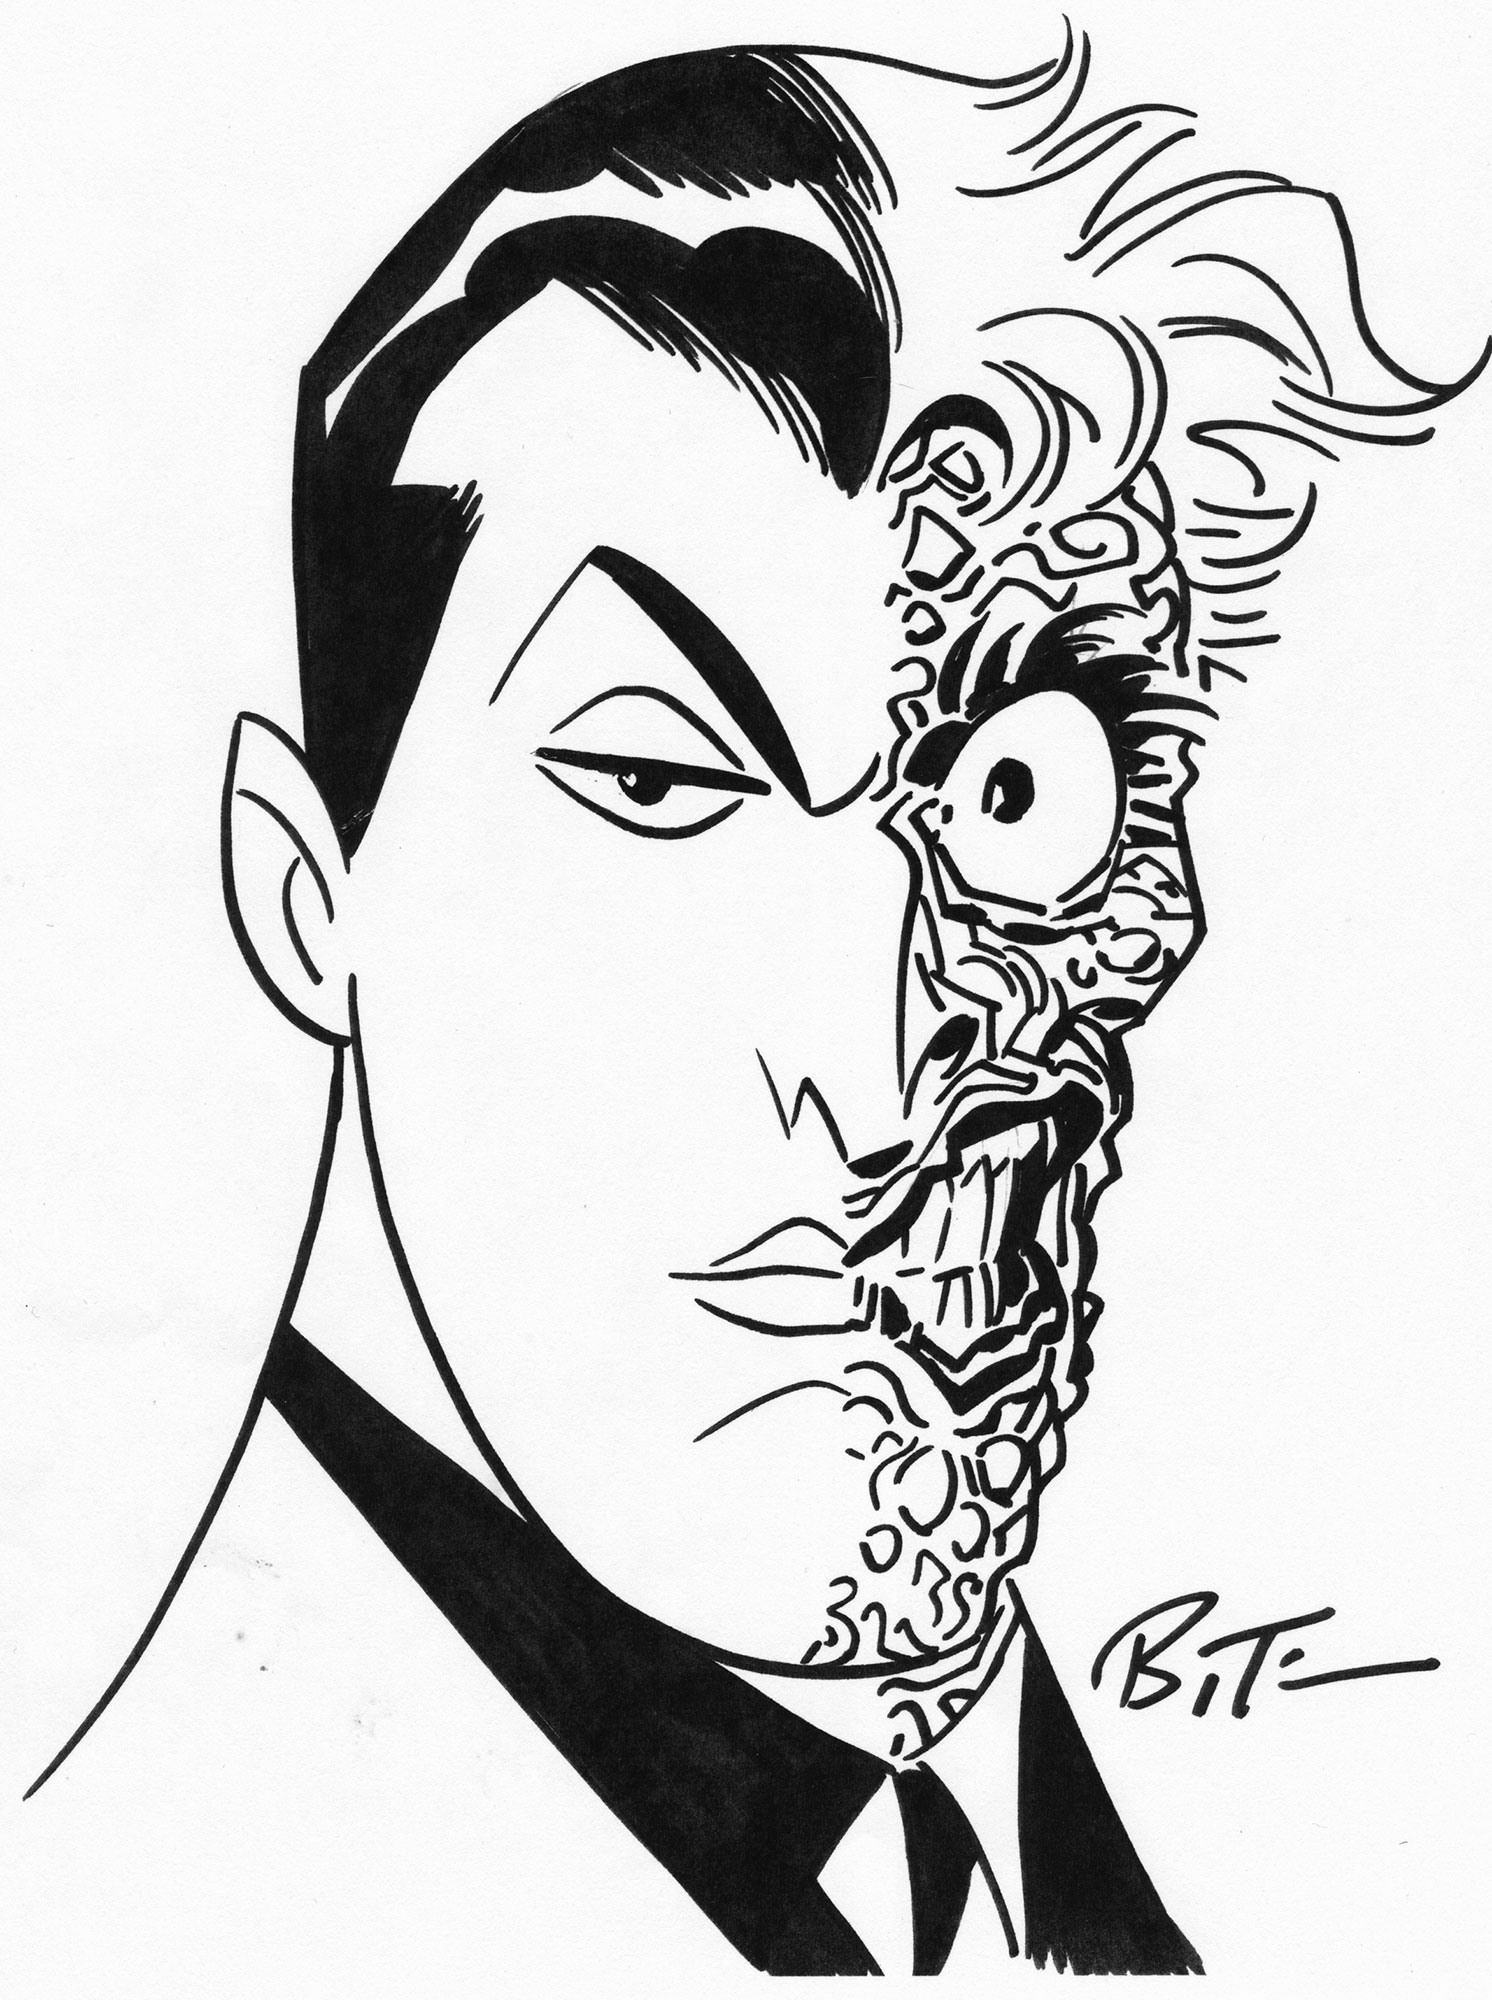 1492x2000 Bruce Timm 2016 Two Face Drawing